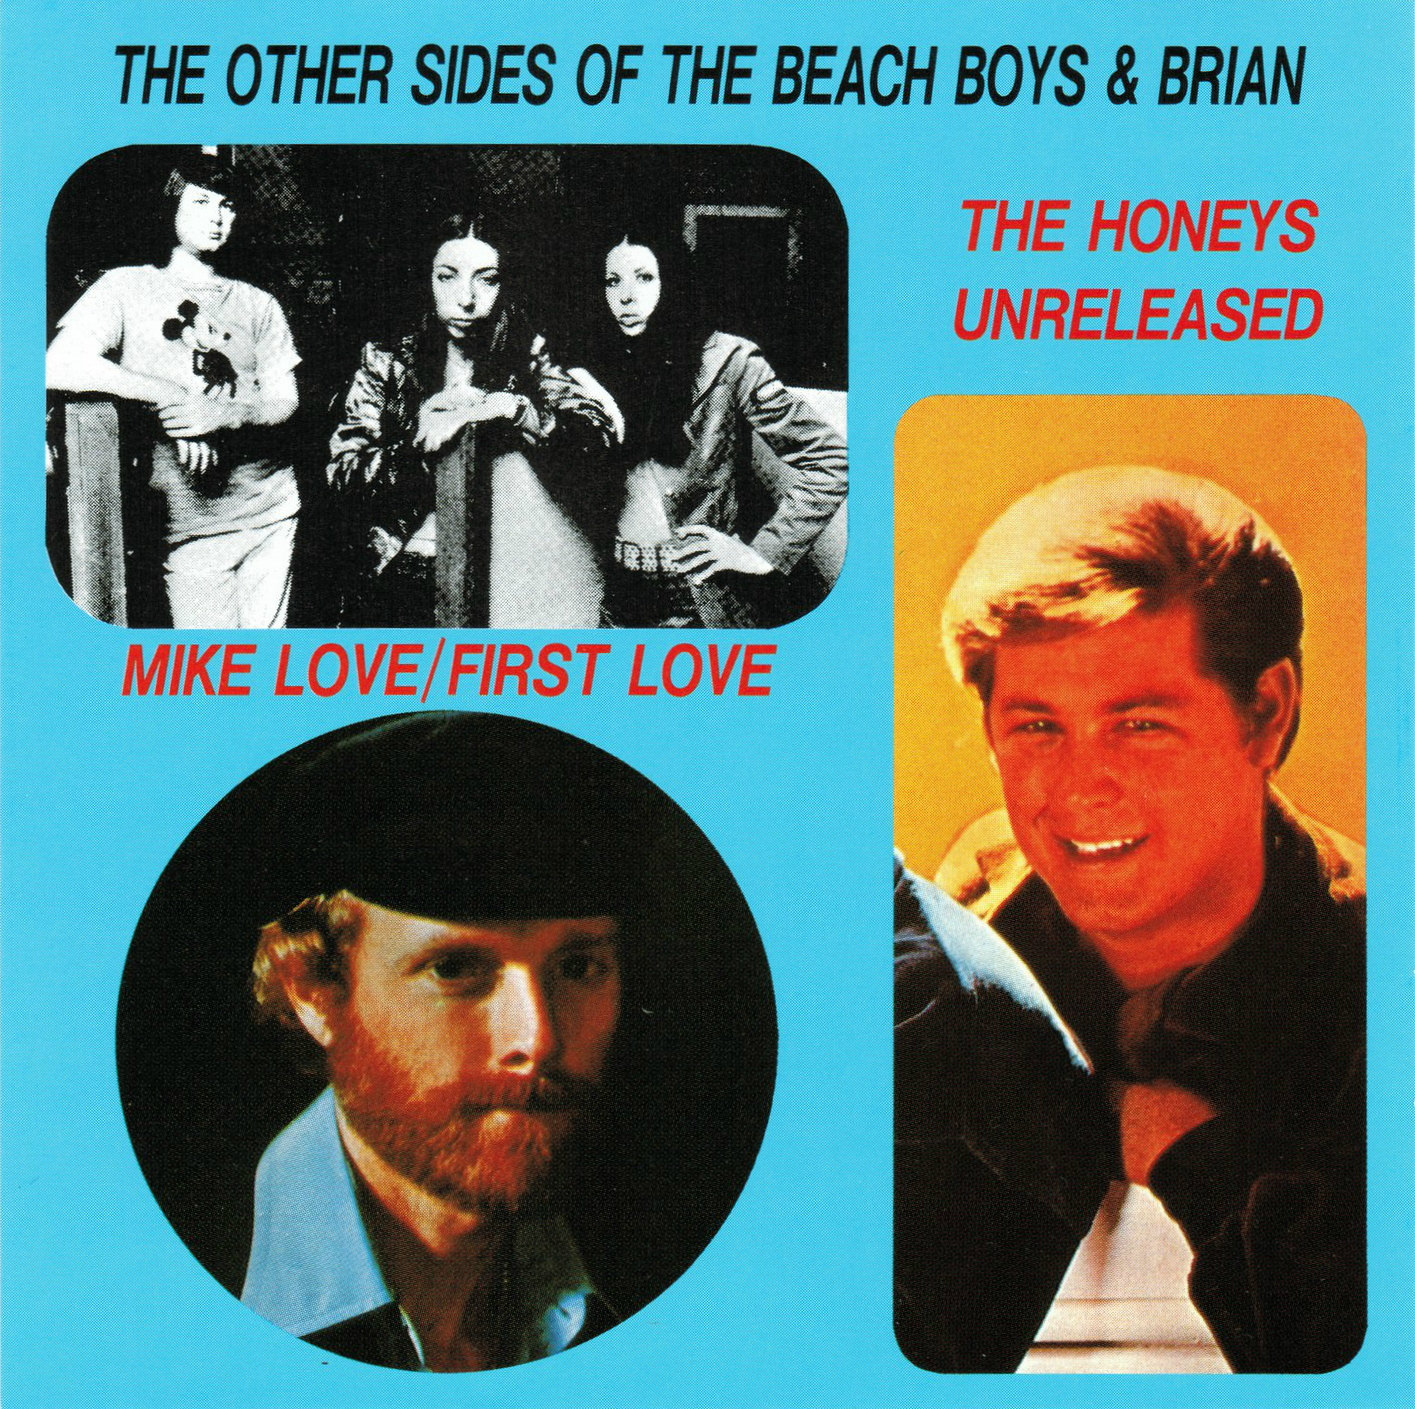 The Other Sides Of The Beach Boys & Brian cover